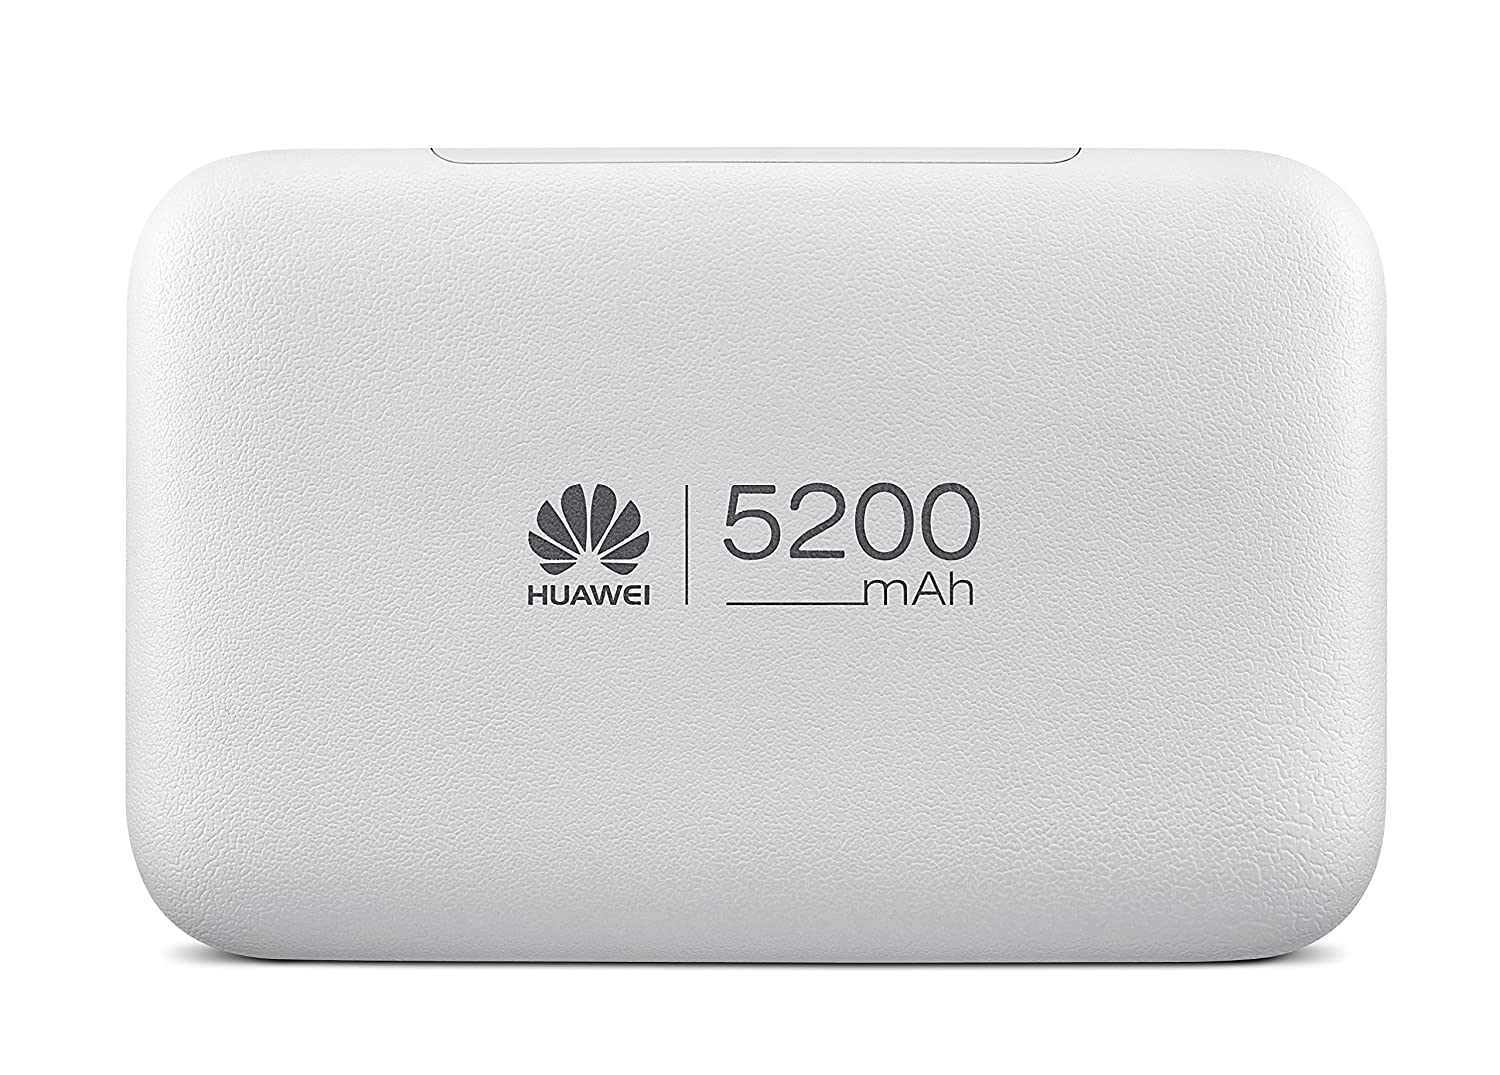 Huawei E5770s 320 4g Lte 150 Mbps Mobile Wifi Pro 20 Mifi Modem E5577 Unlock All Operator Best Seller Hours Working Power Bank Feature Ethernet Port White Cell Phones Accessories